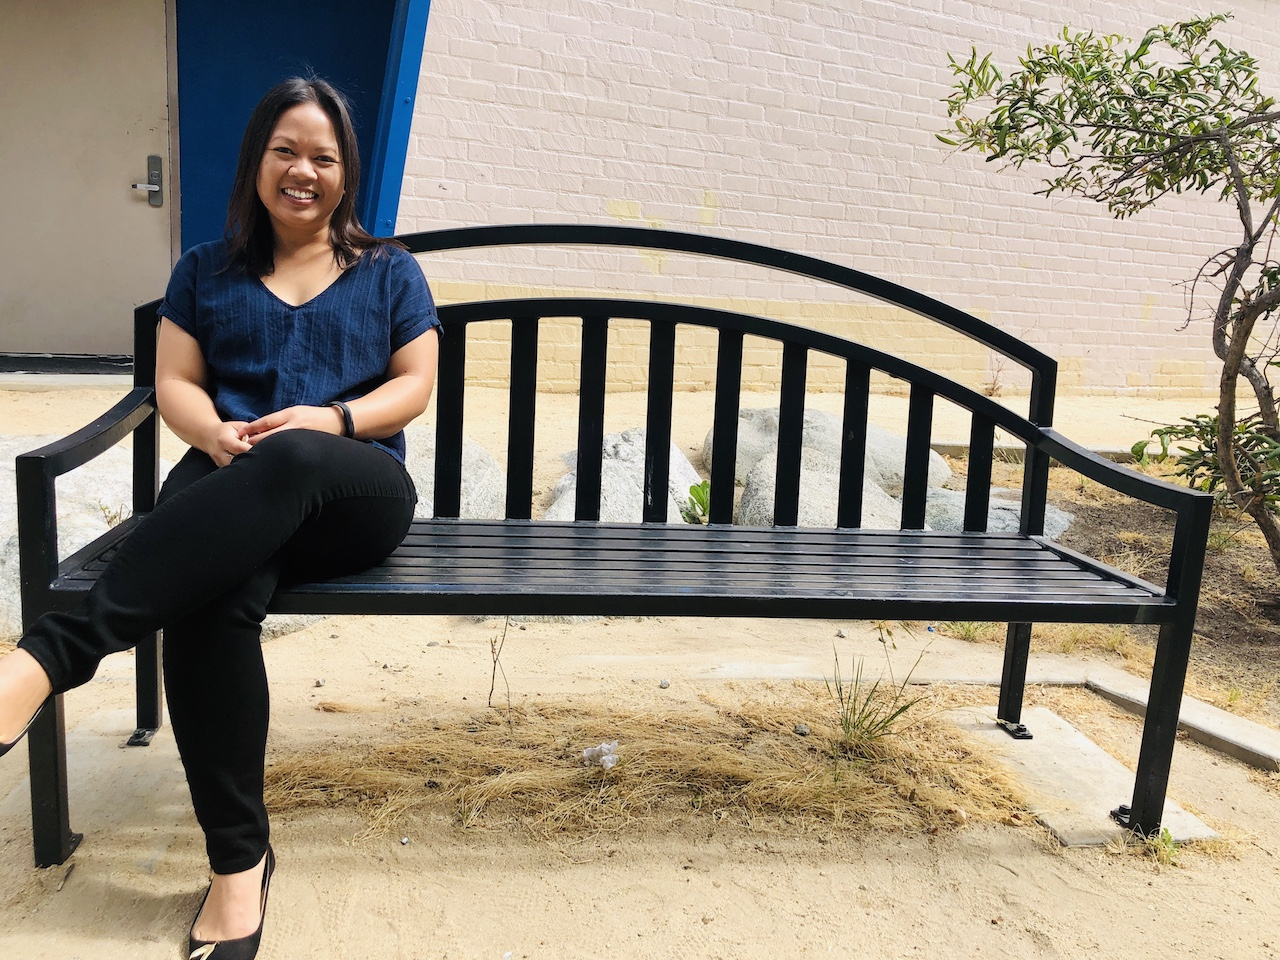 HS Director Em takes pride, finds purpose in students